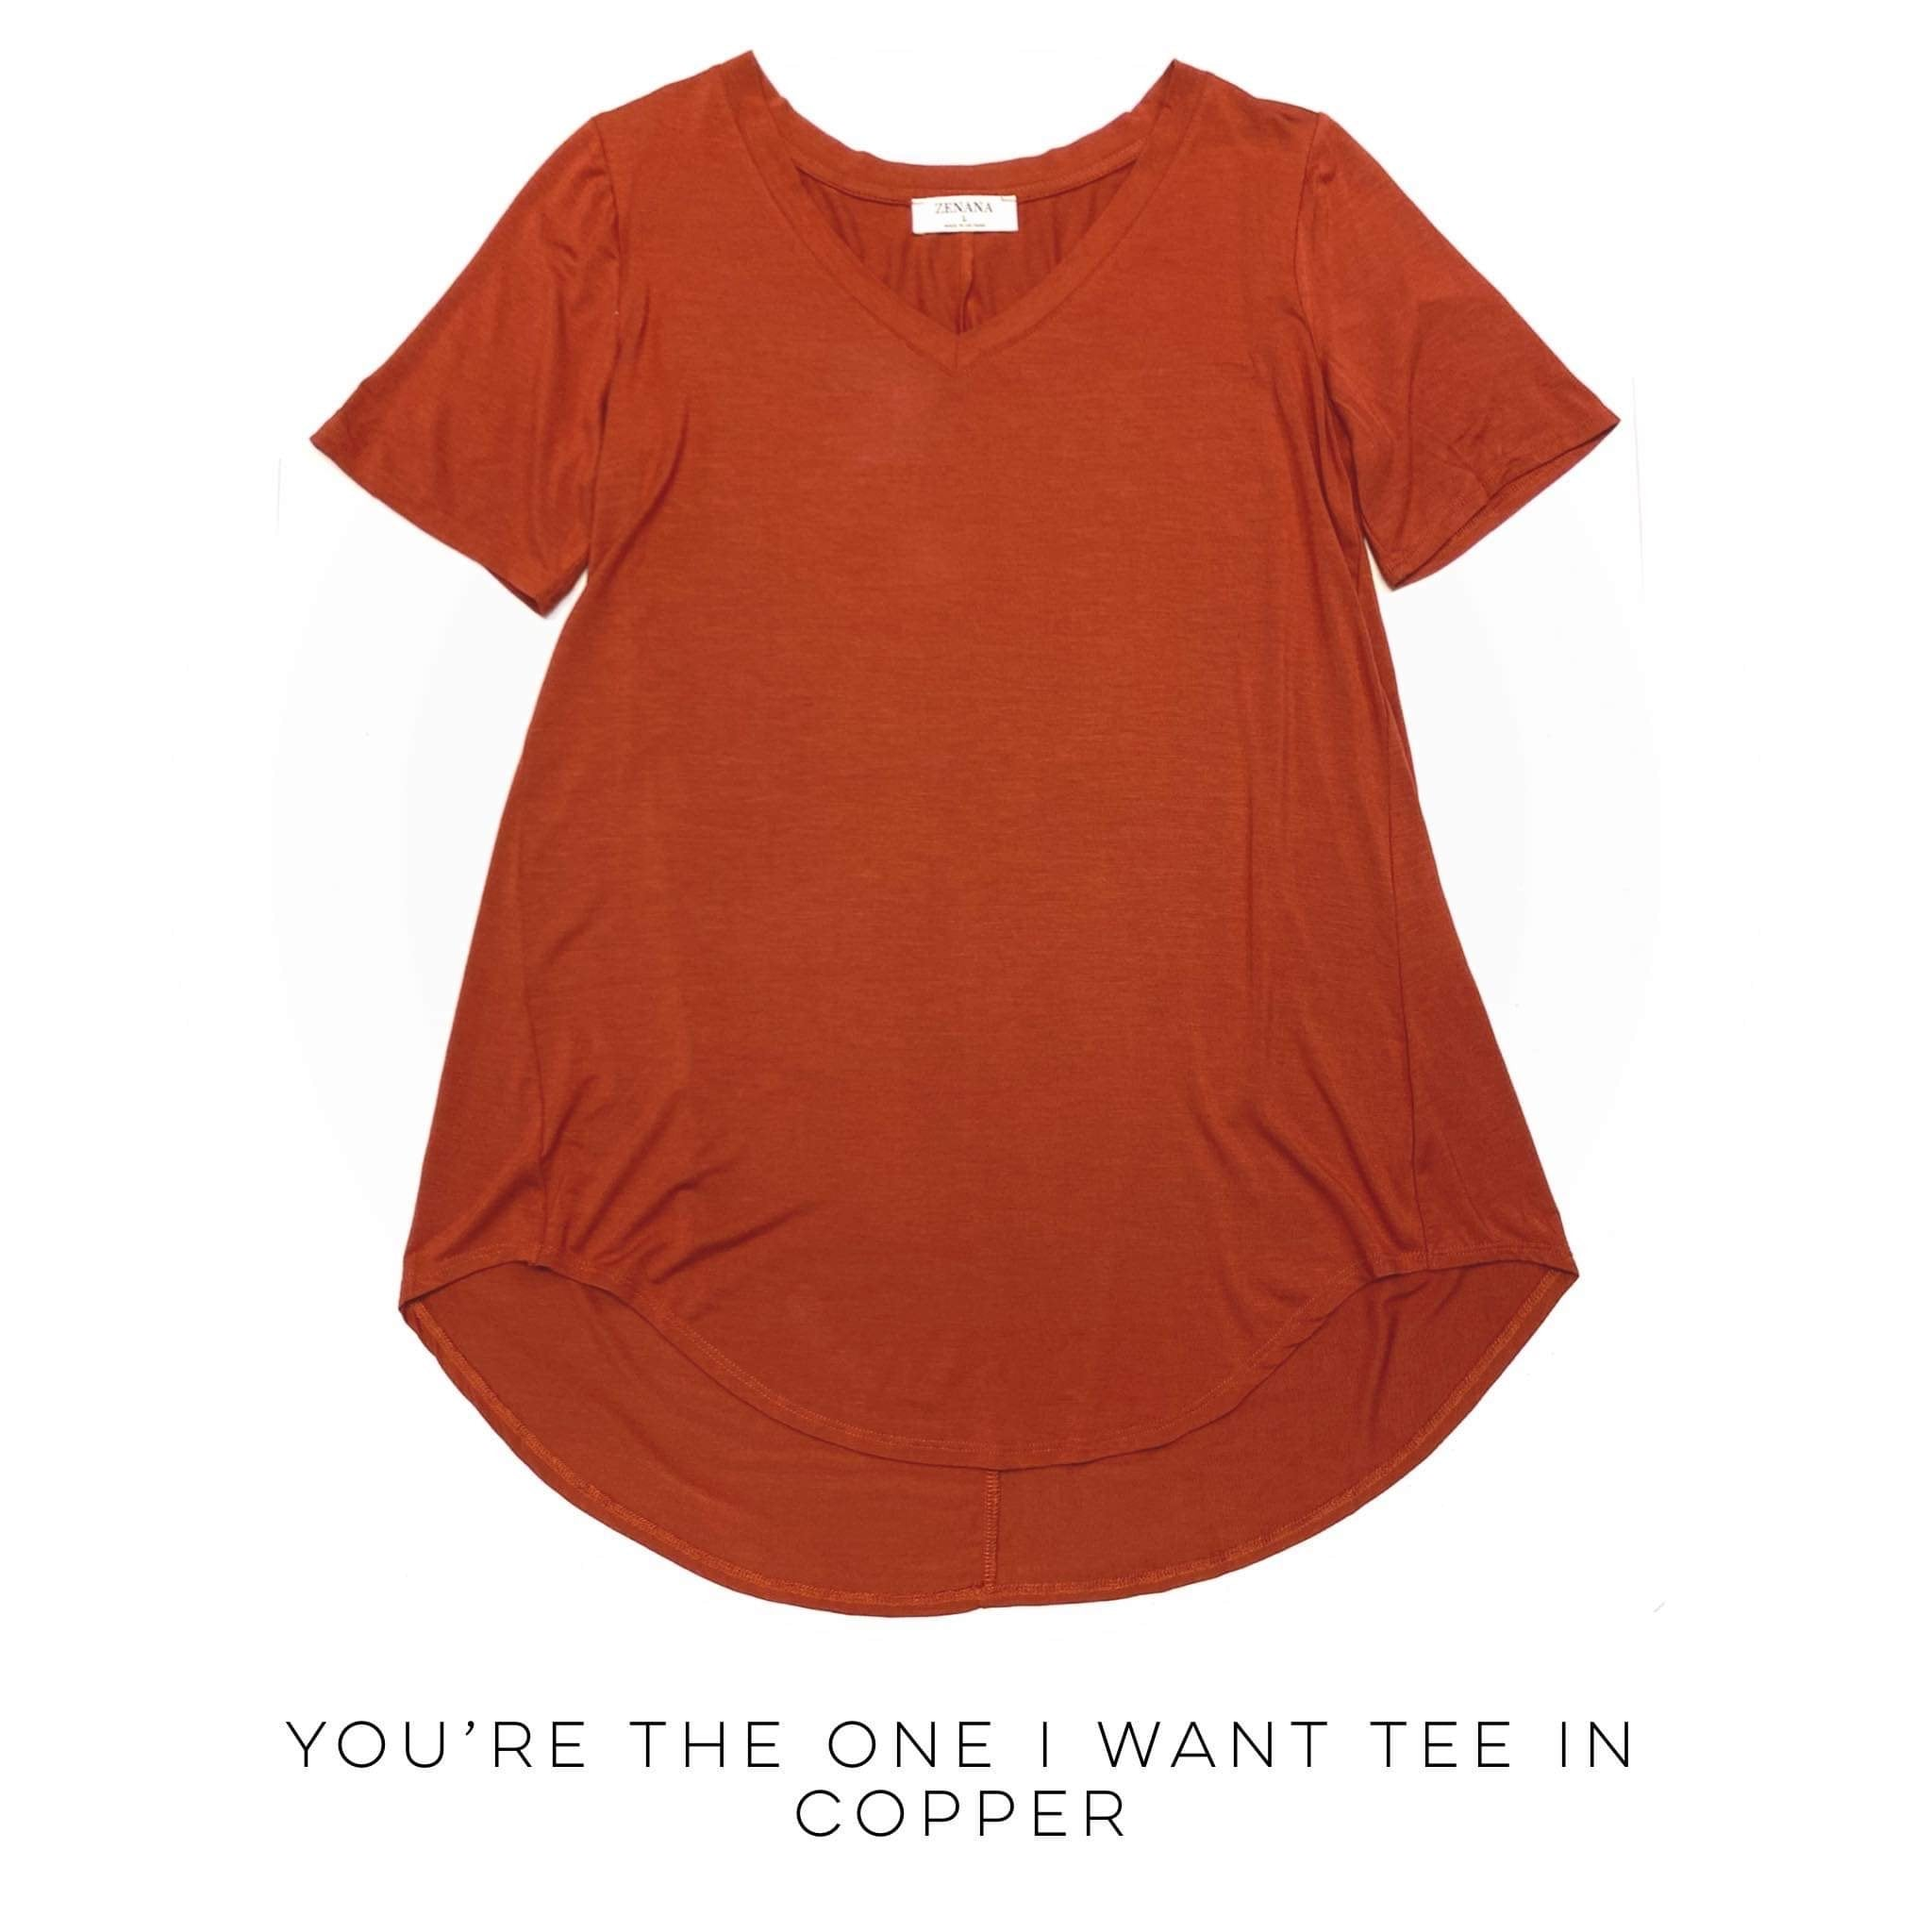 You're The One I Want Tee in Copper